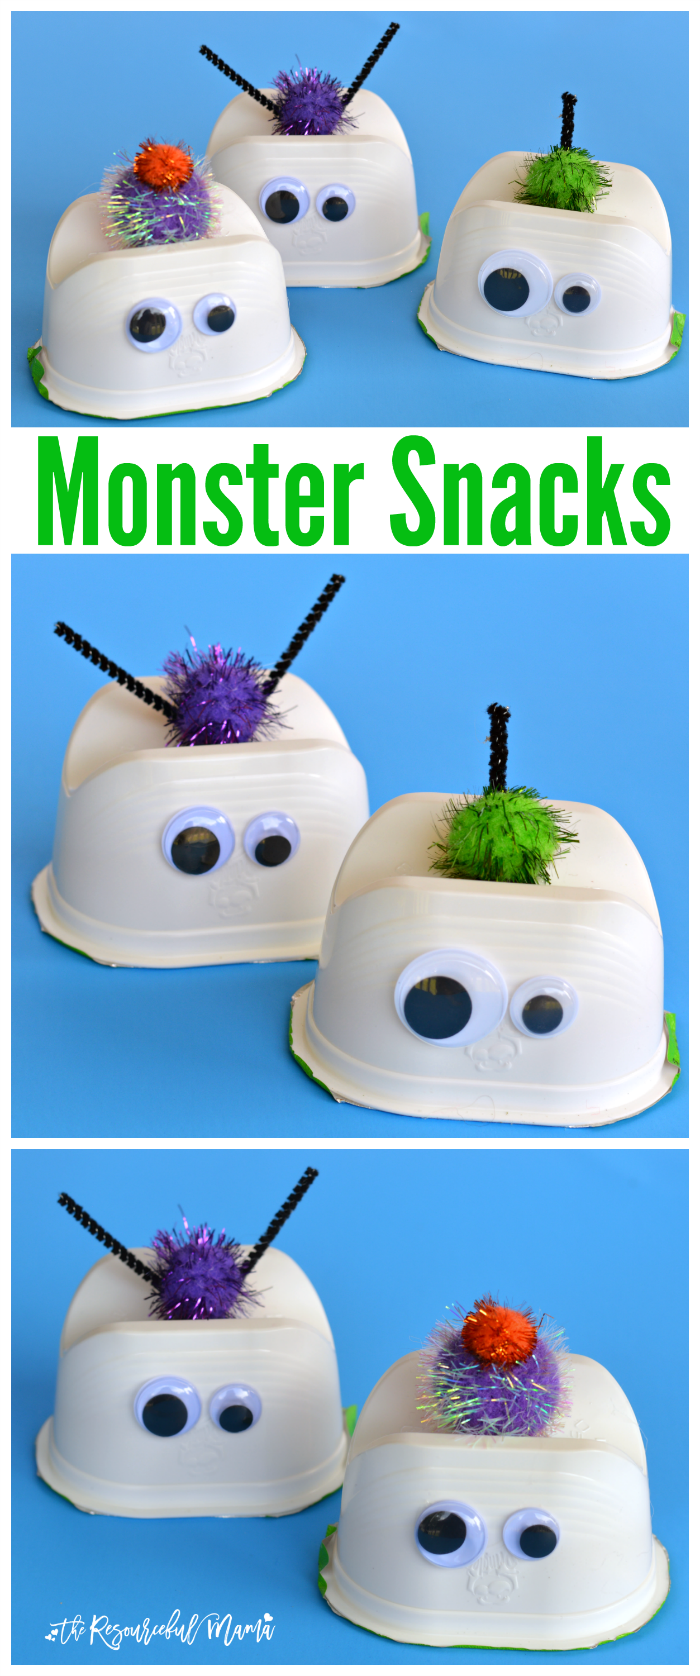 These wacky monster snacks are so fun, versatile, and creative! They work great for Halloween, a monster them, or just for fun.